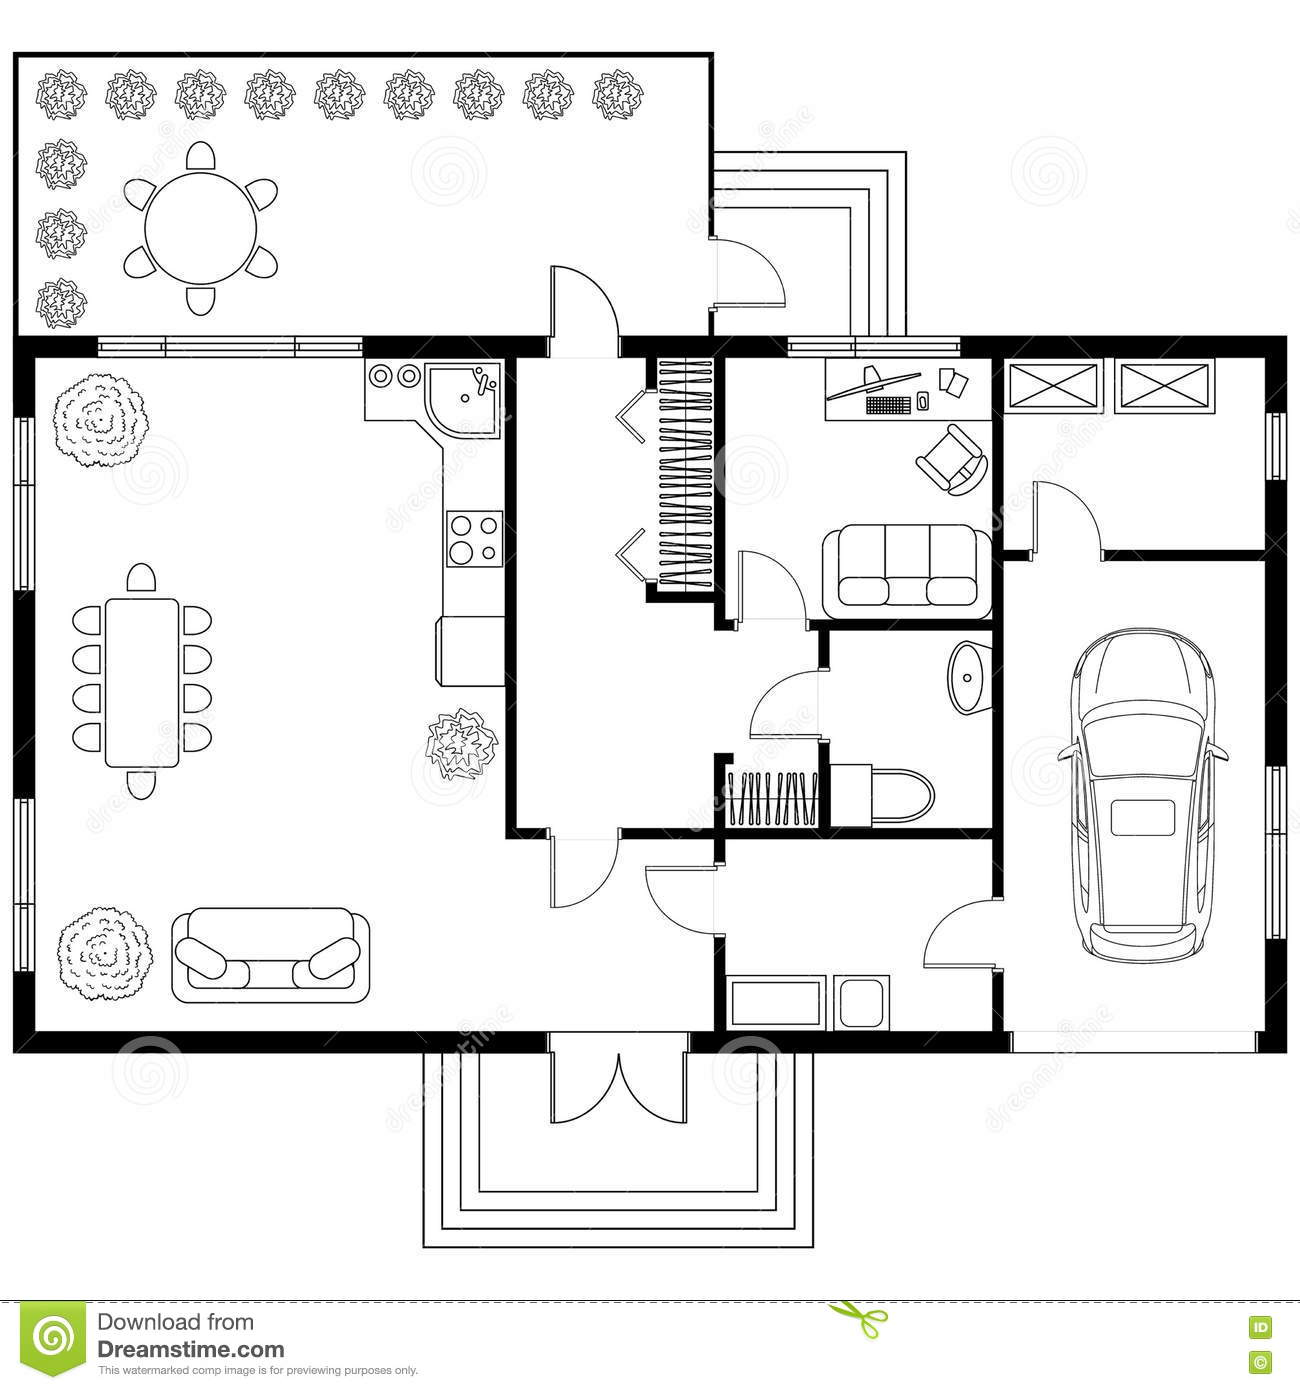 Plan architectural d 39 une maison avec le garage for Plans de maison services d architecture